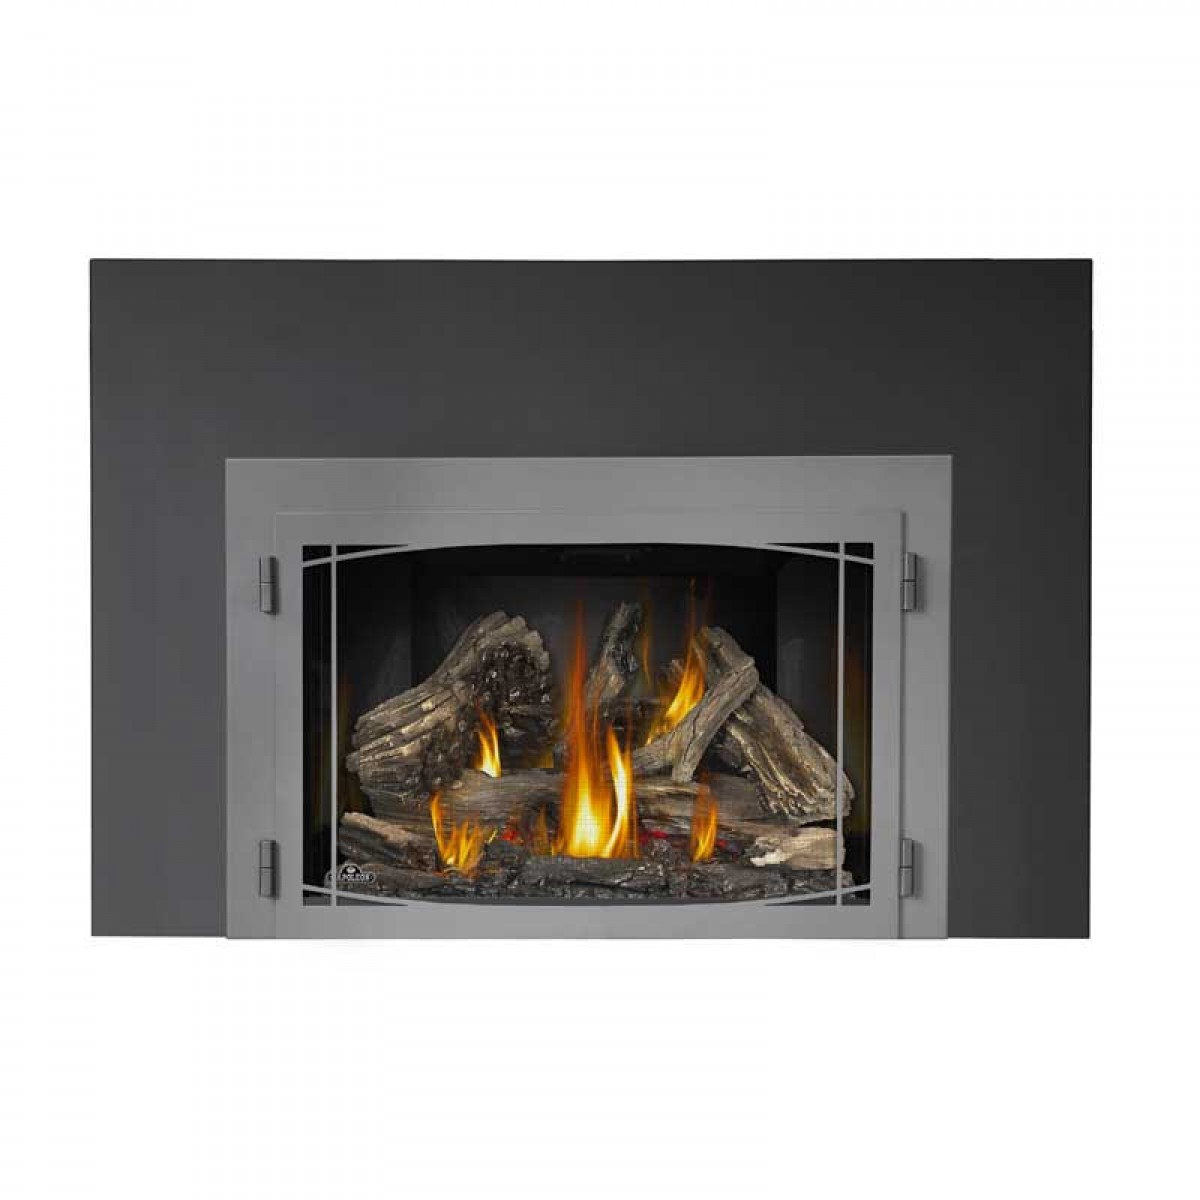 Napoleon Xir4n 1 Large Deluxe Natural Gas Fireplace Insert At Ibuyfireplaces